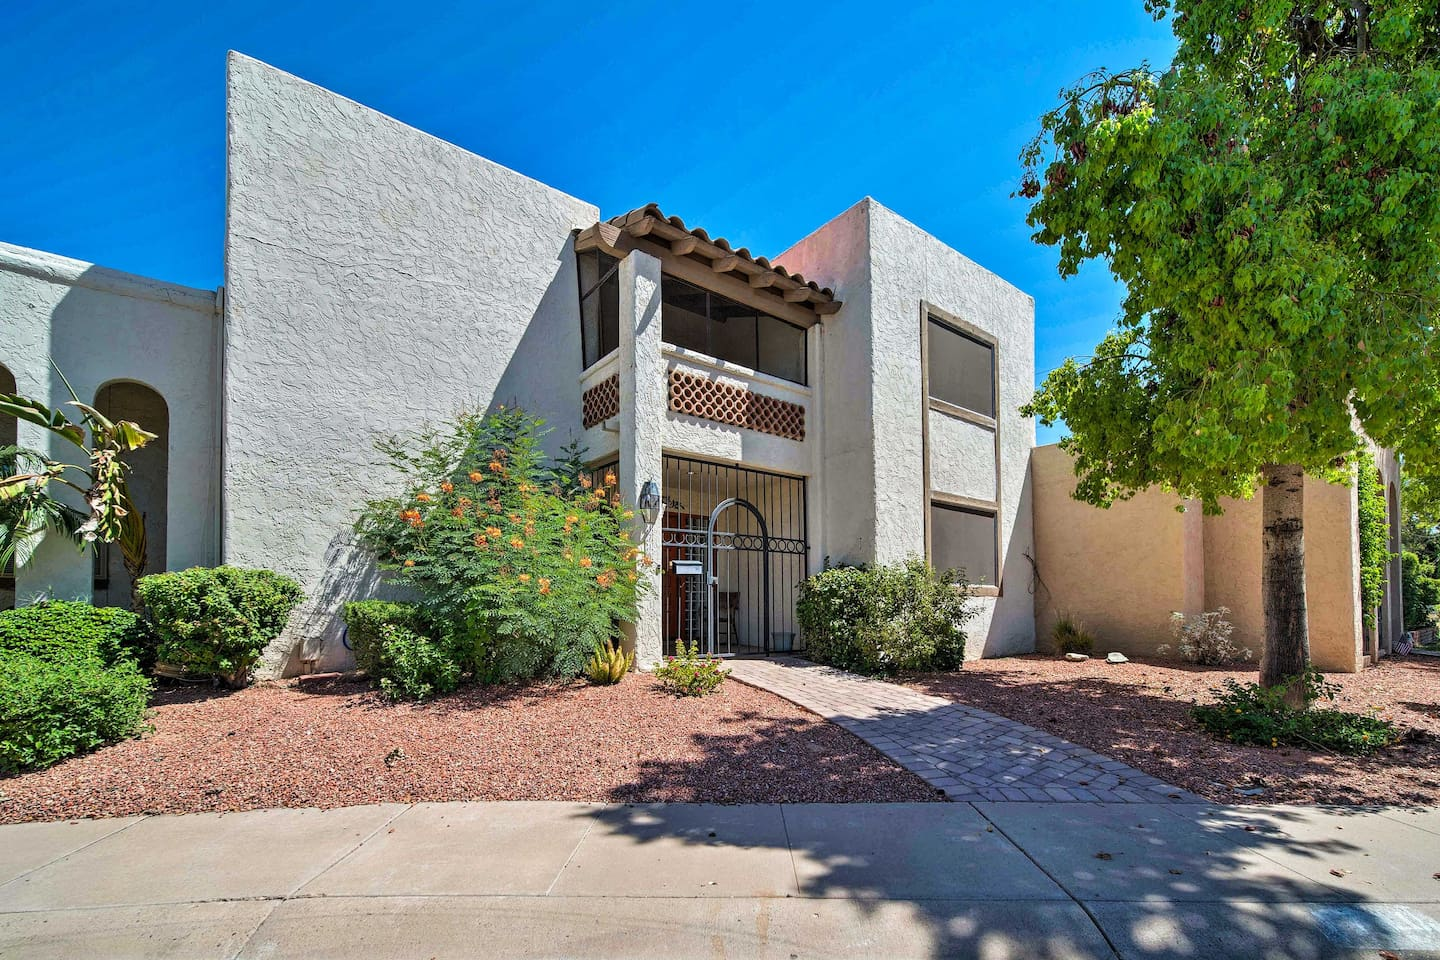 Escape to this tastefully furnished 4-bedroom, 2-bath vacation rental in Phoenix